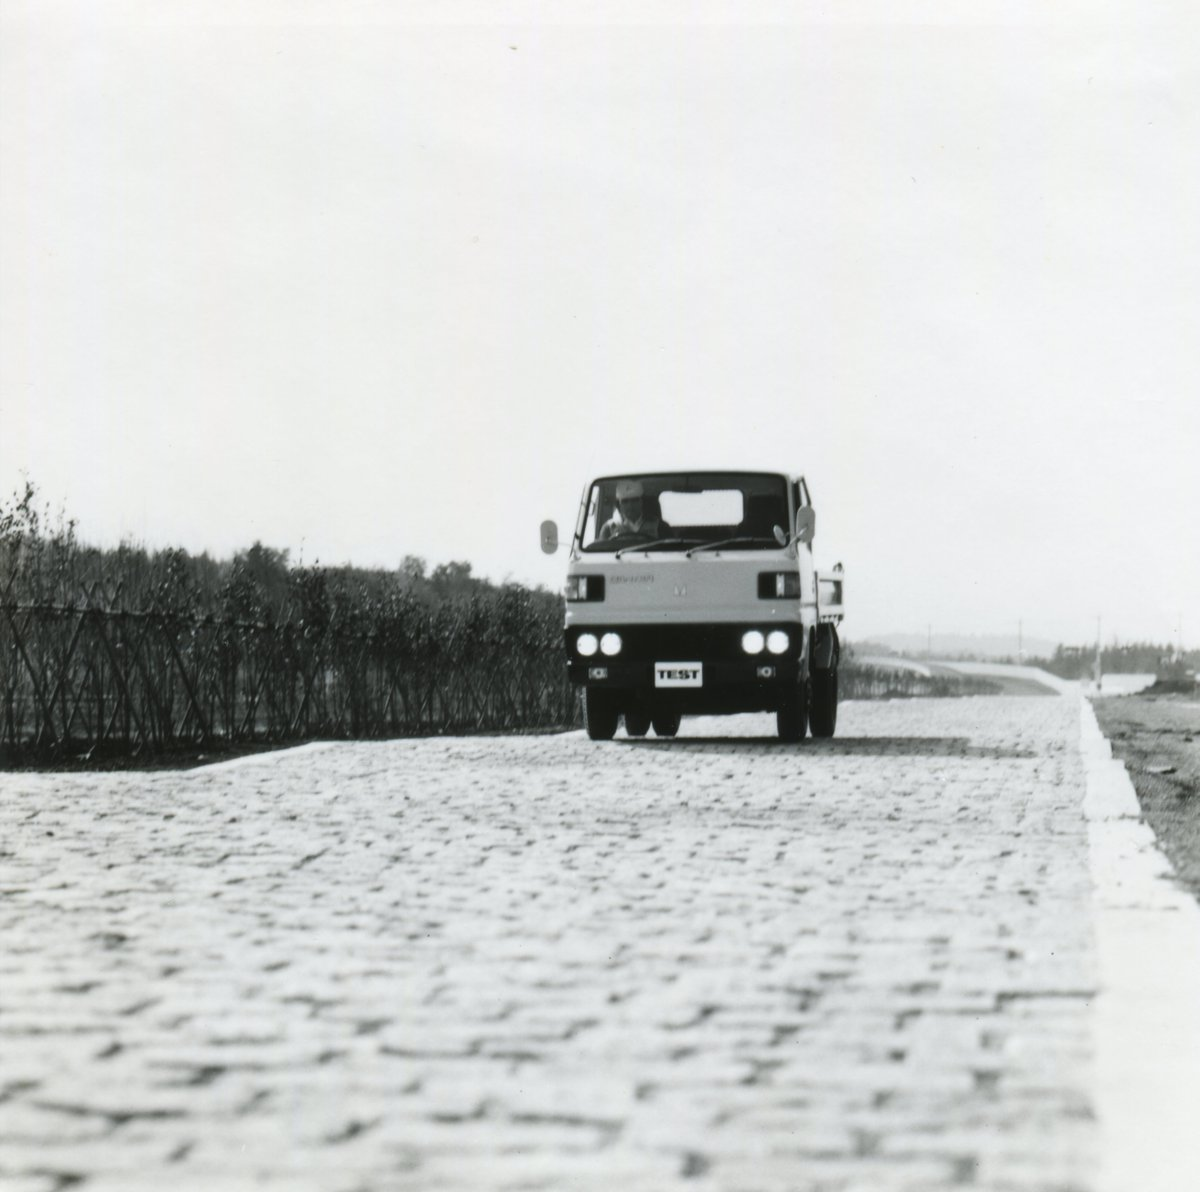 For decades our trucks have been traversing whatever life throws their way!  #fuso #fusotrucks #trucks #tbt